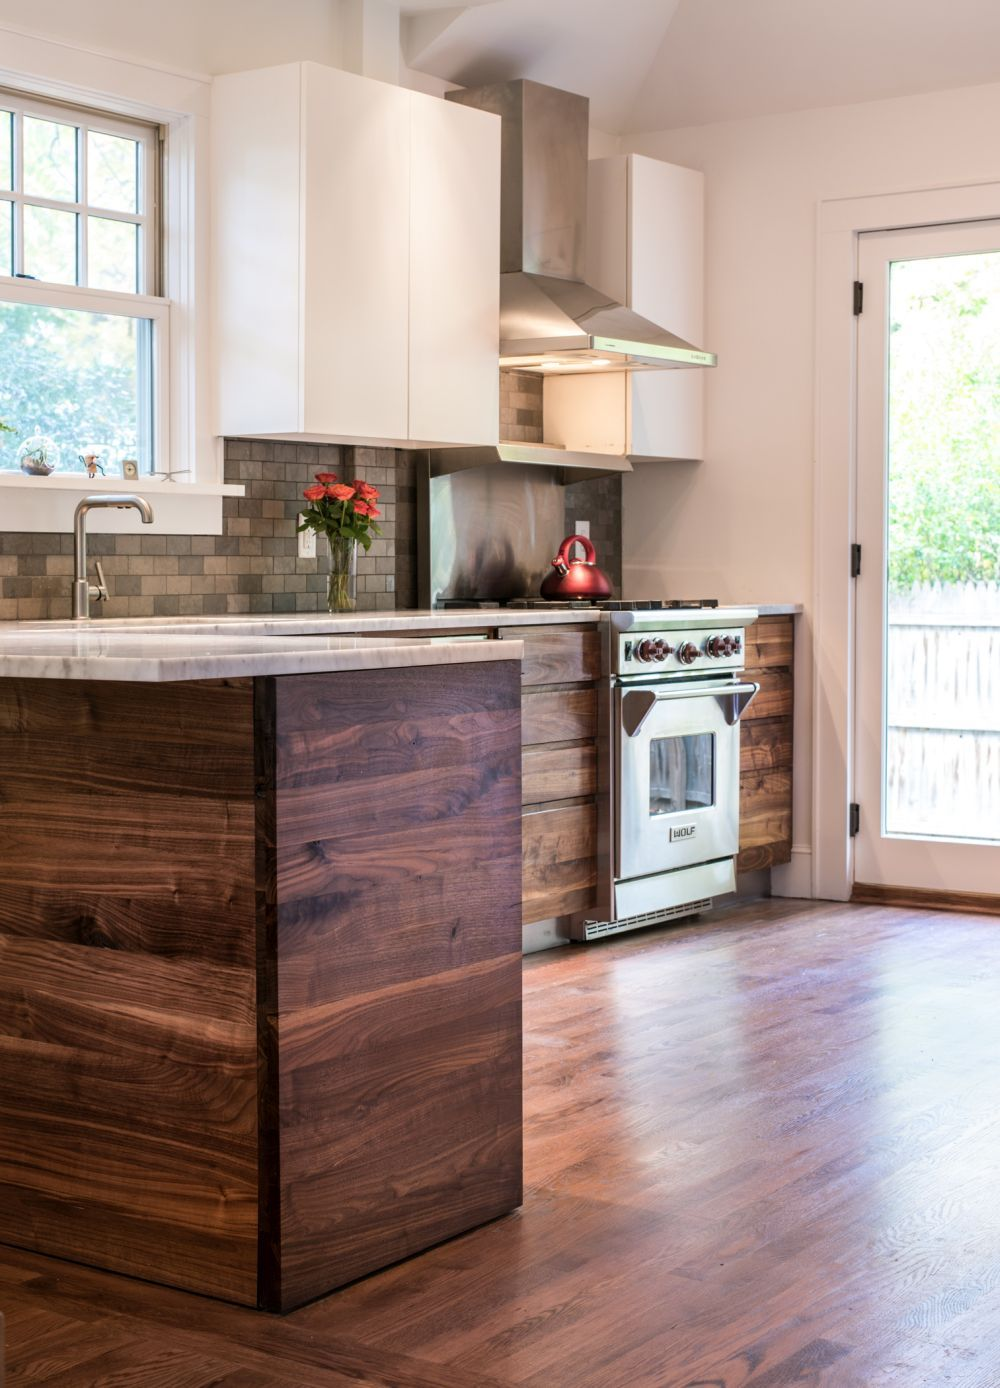 Back To Kitchens Two Tone Rustic Walnut Kitchen This Has Wood For The Base Cabinets And White Upper Which Were Done